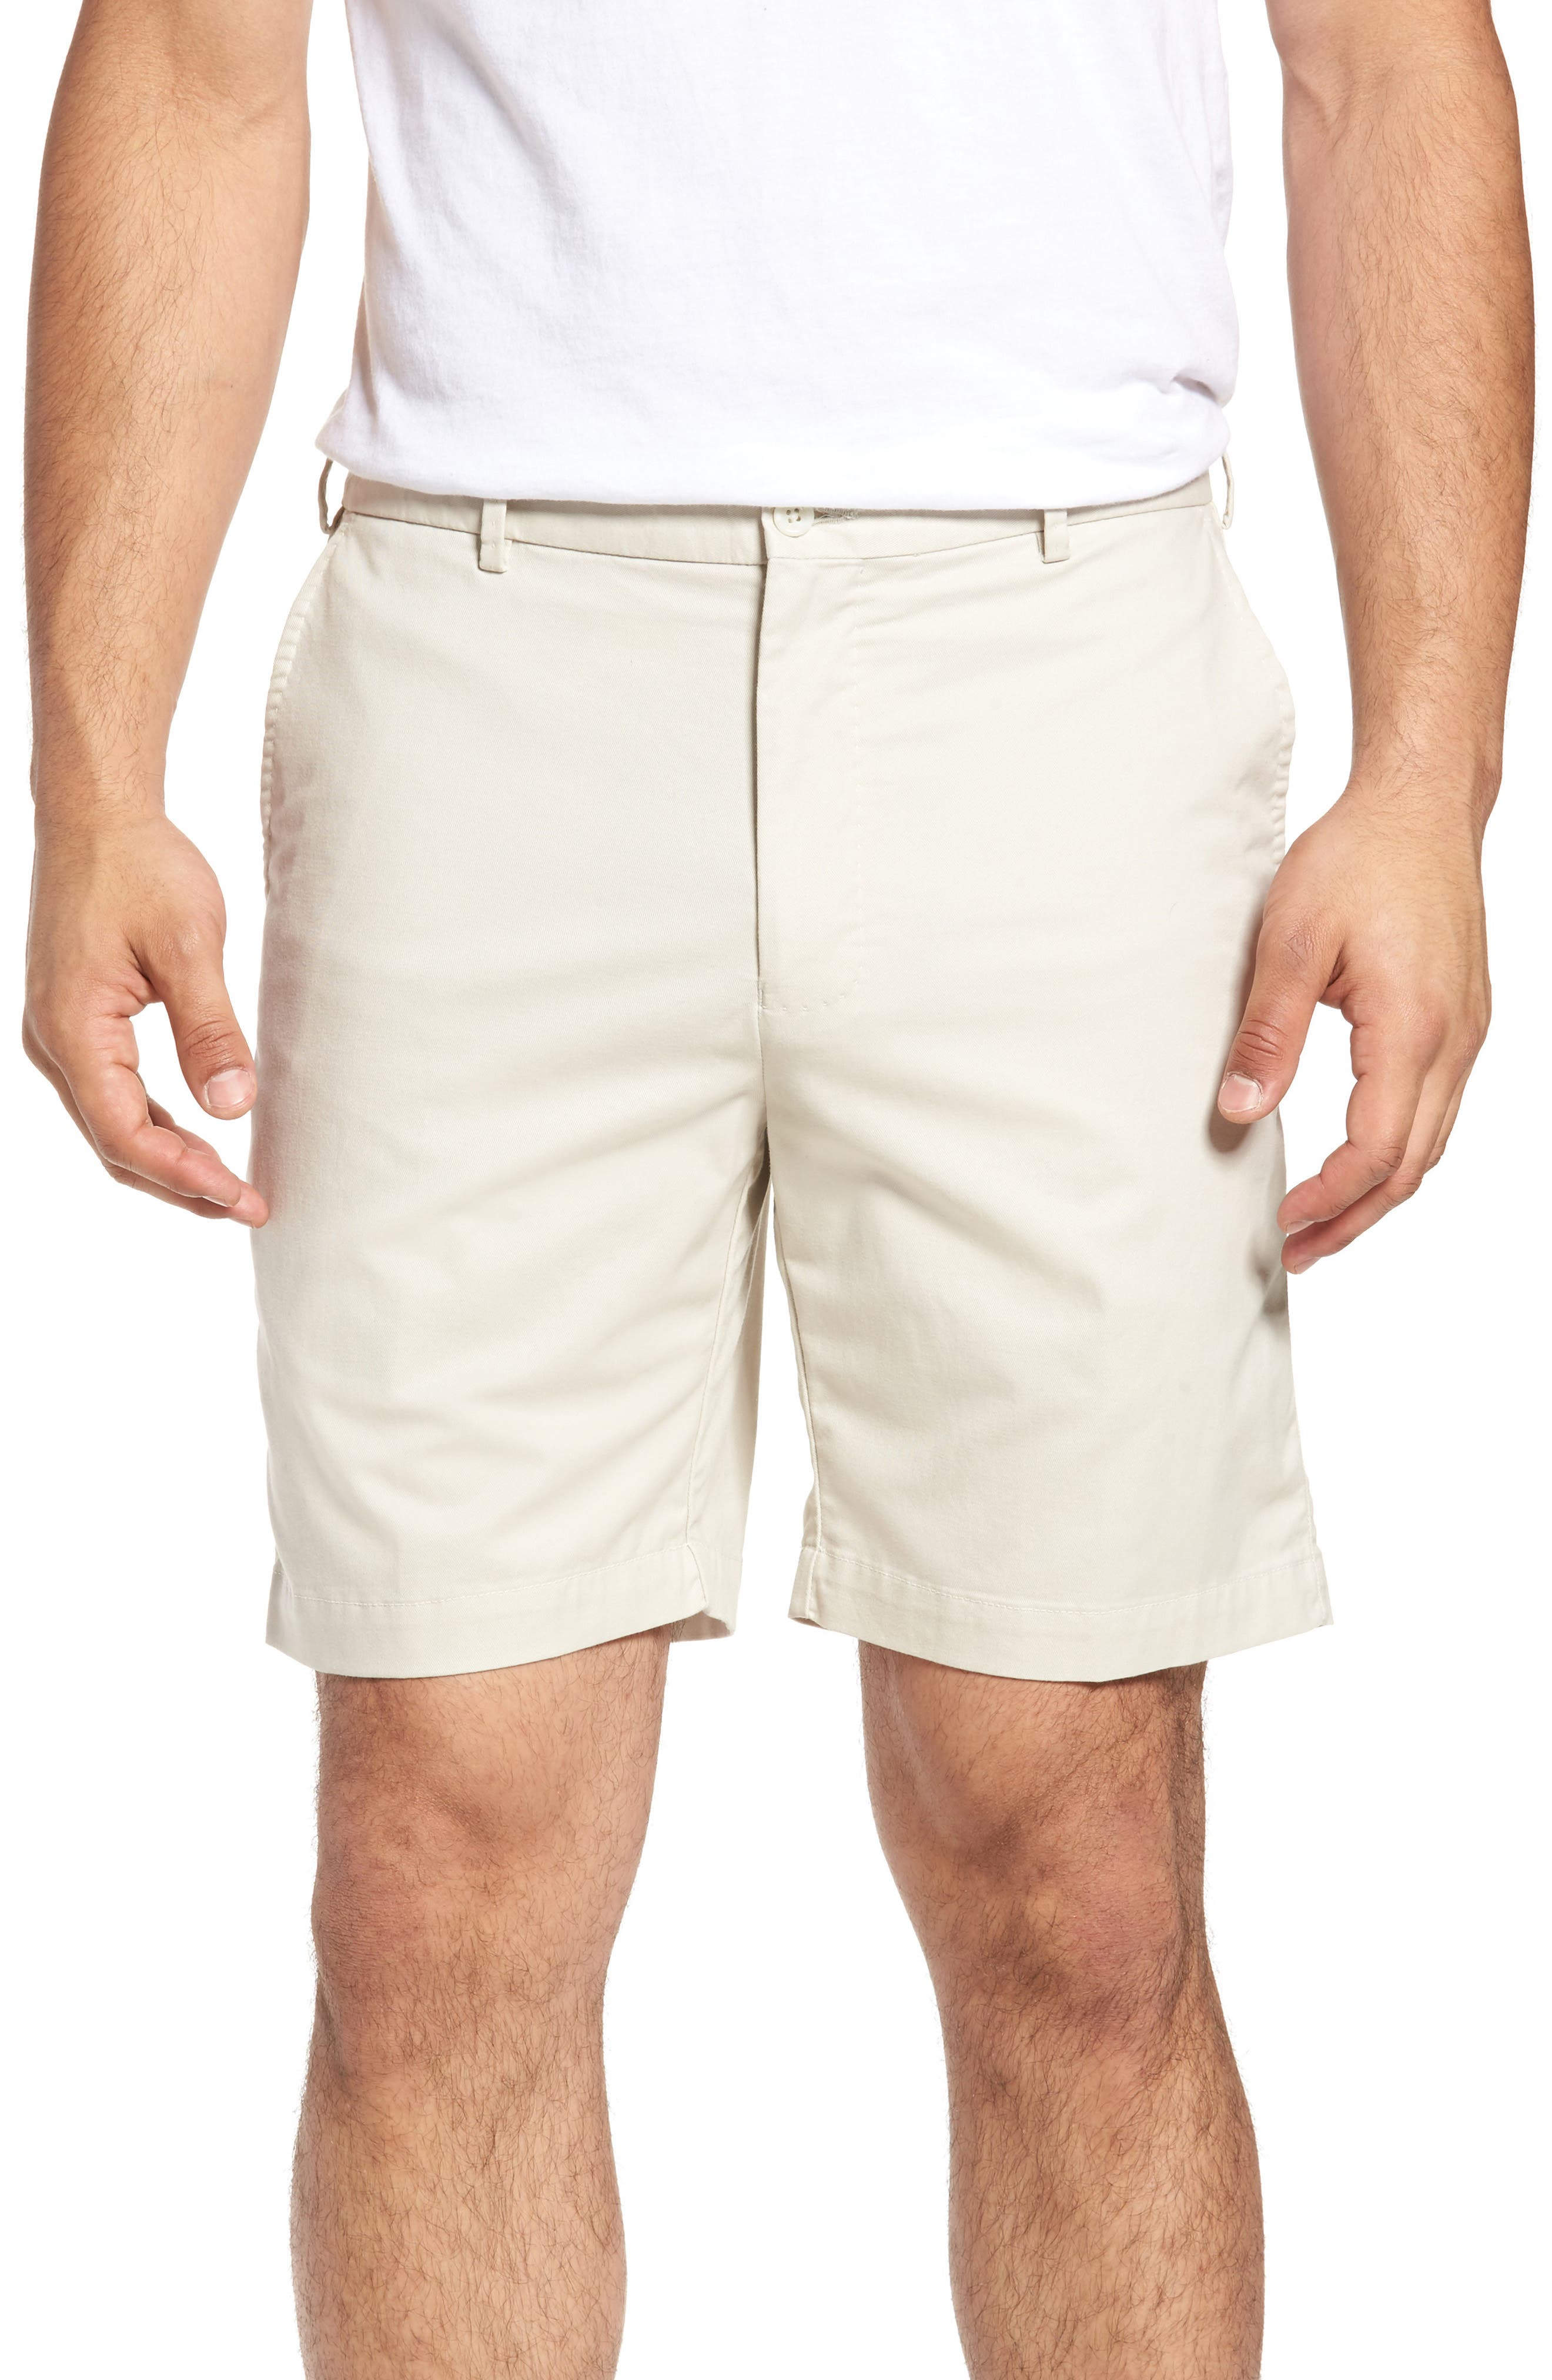 Alternate Image 1 Selected - Peter Millar Soft Touch Twill Shorts (Tall)